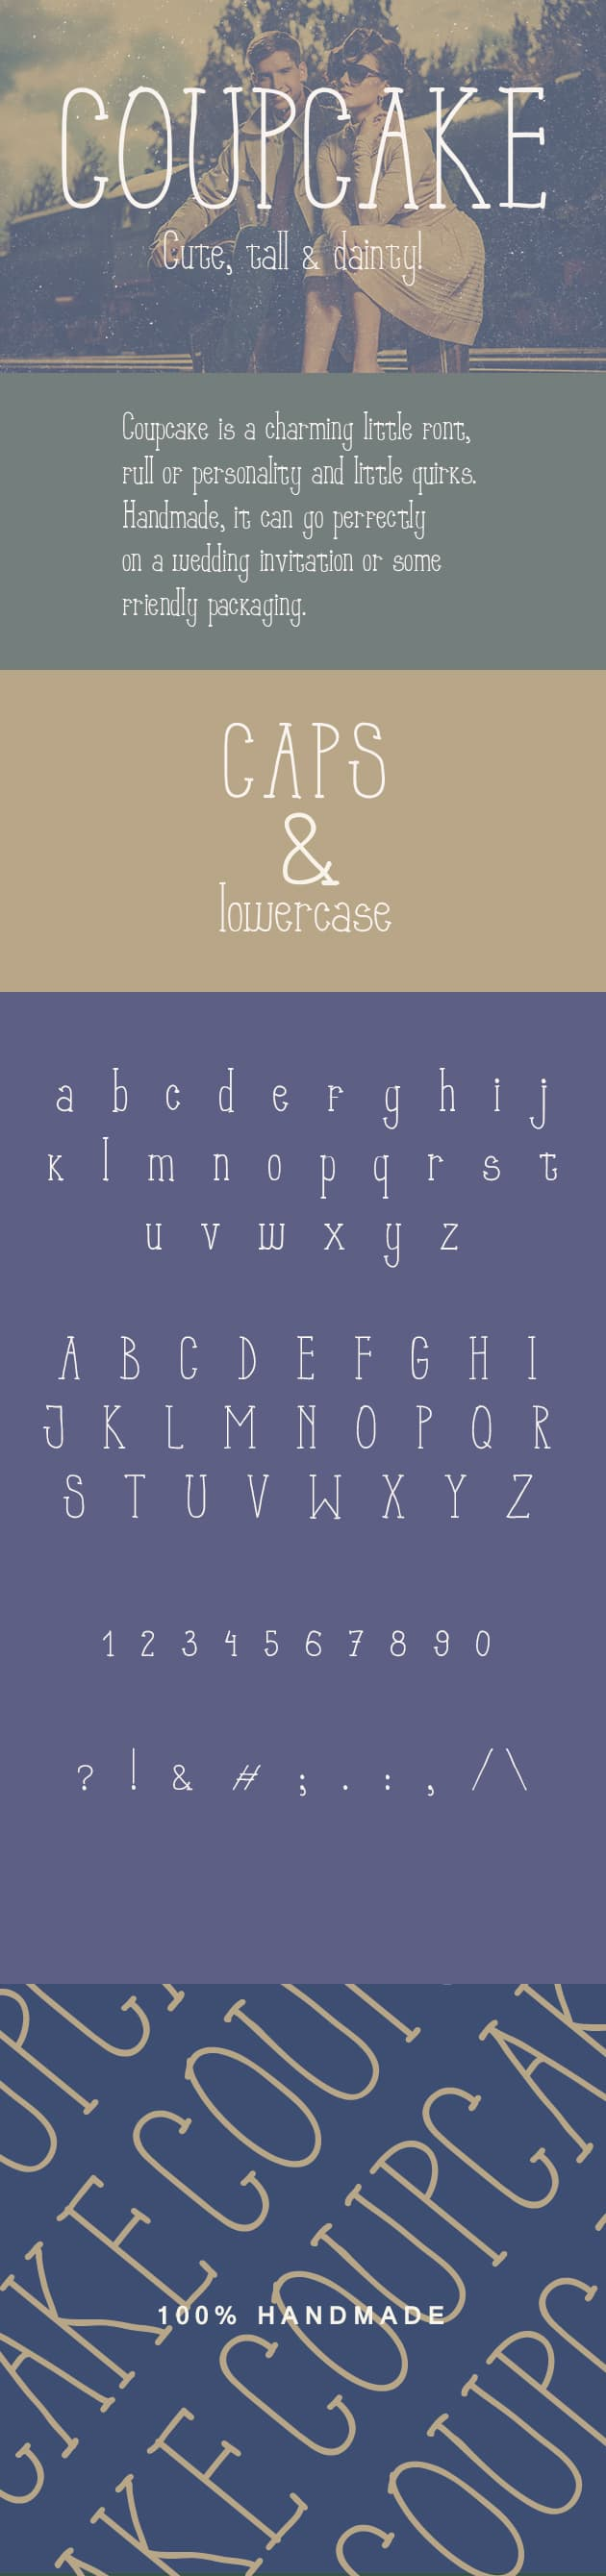 Coup Cake Font preview large 4